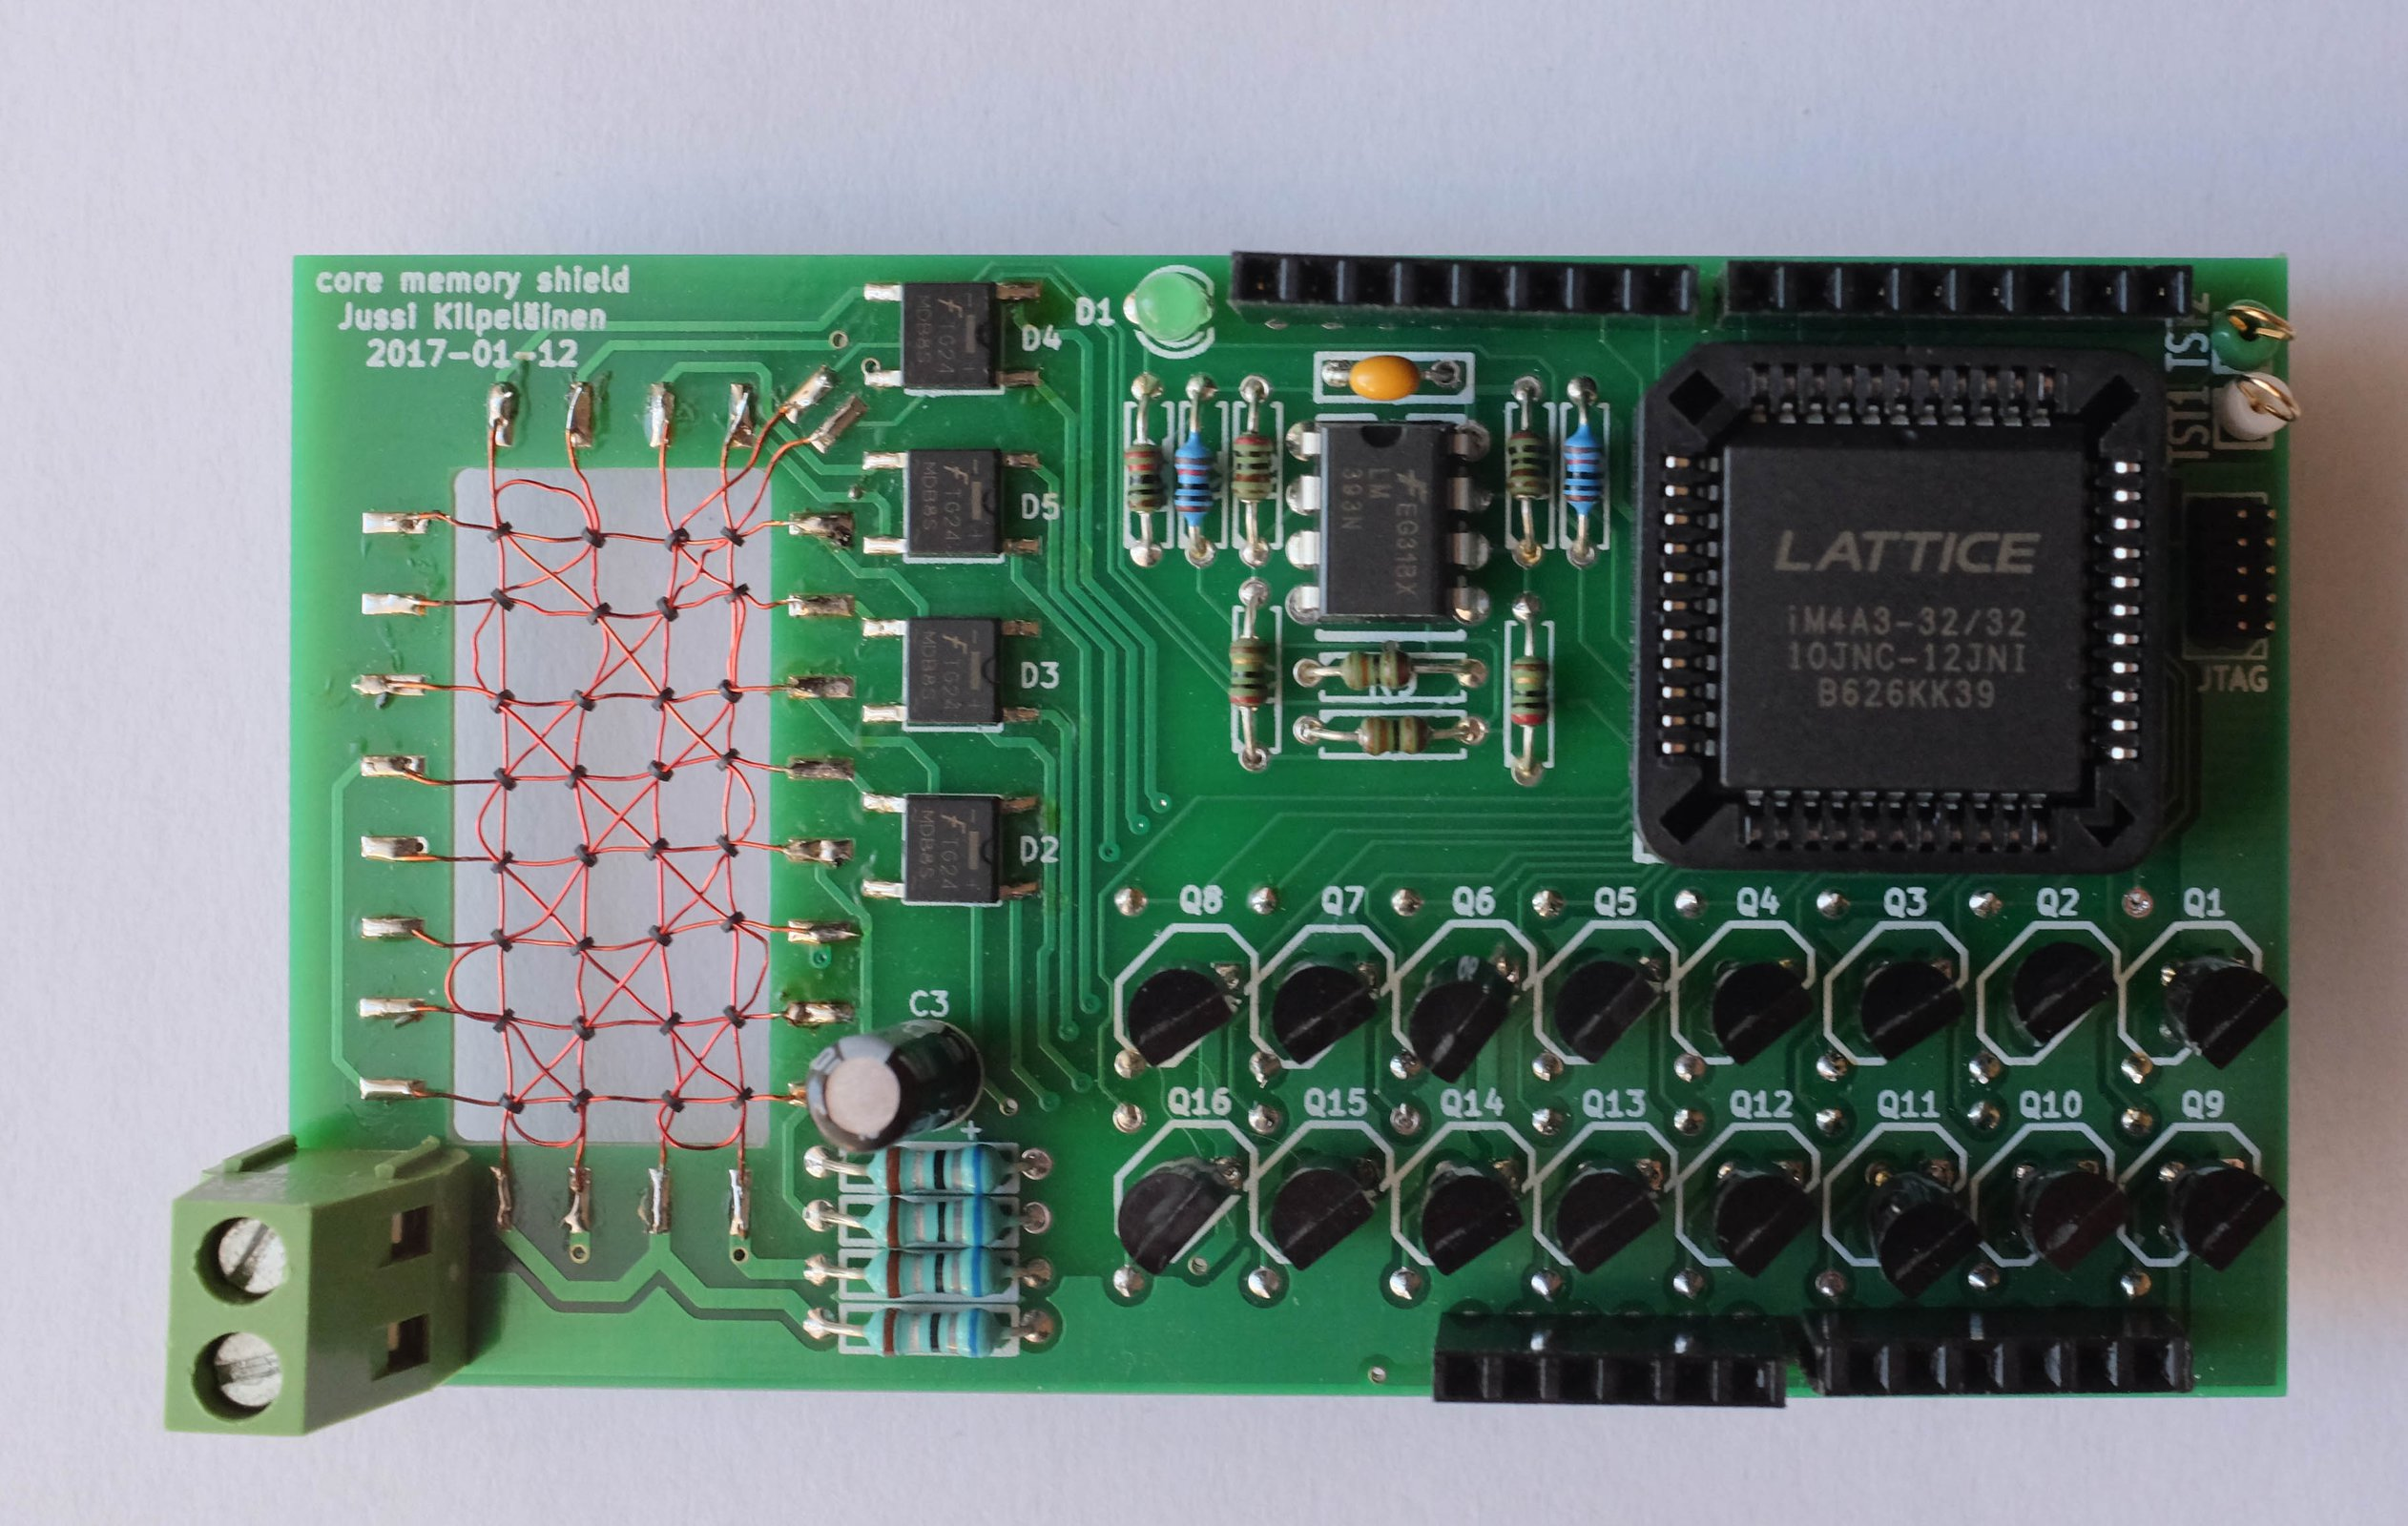 Core memory shield for arduino from jussi kilpelainen on